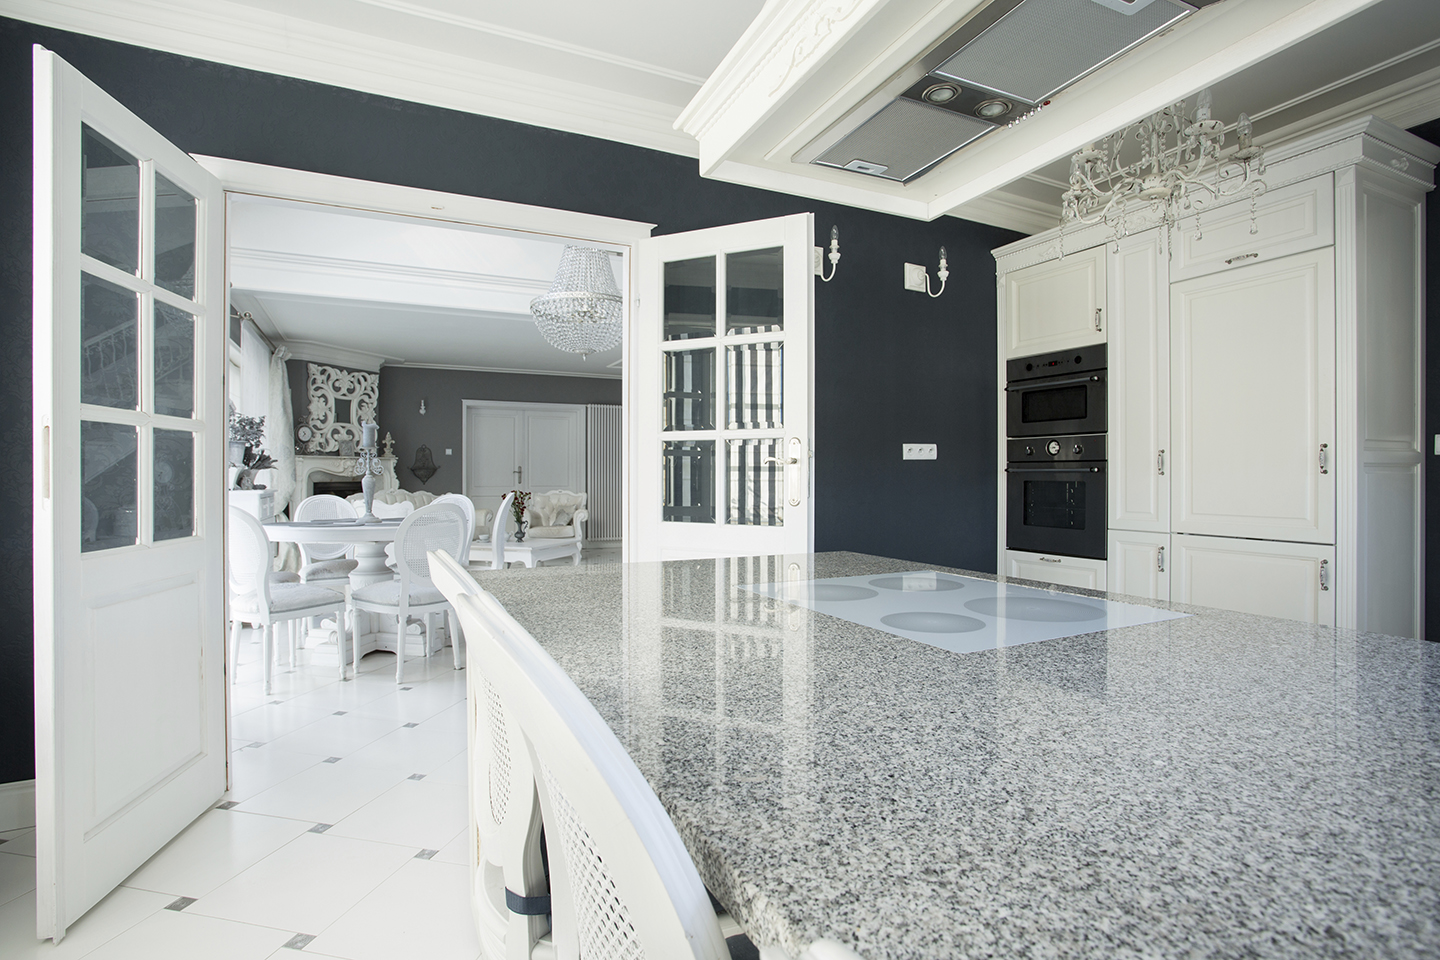 View of expensive kitchen with marble worktop